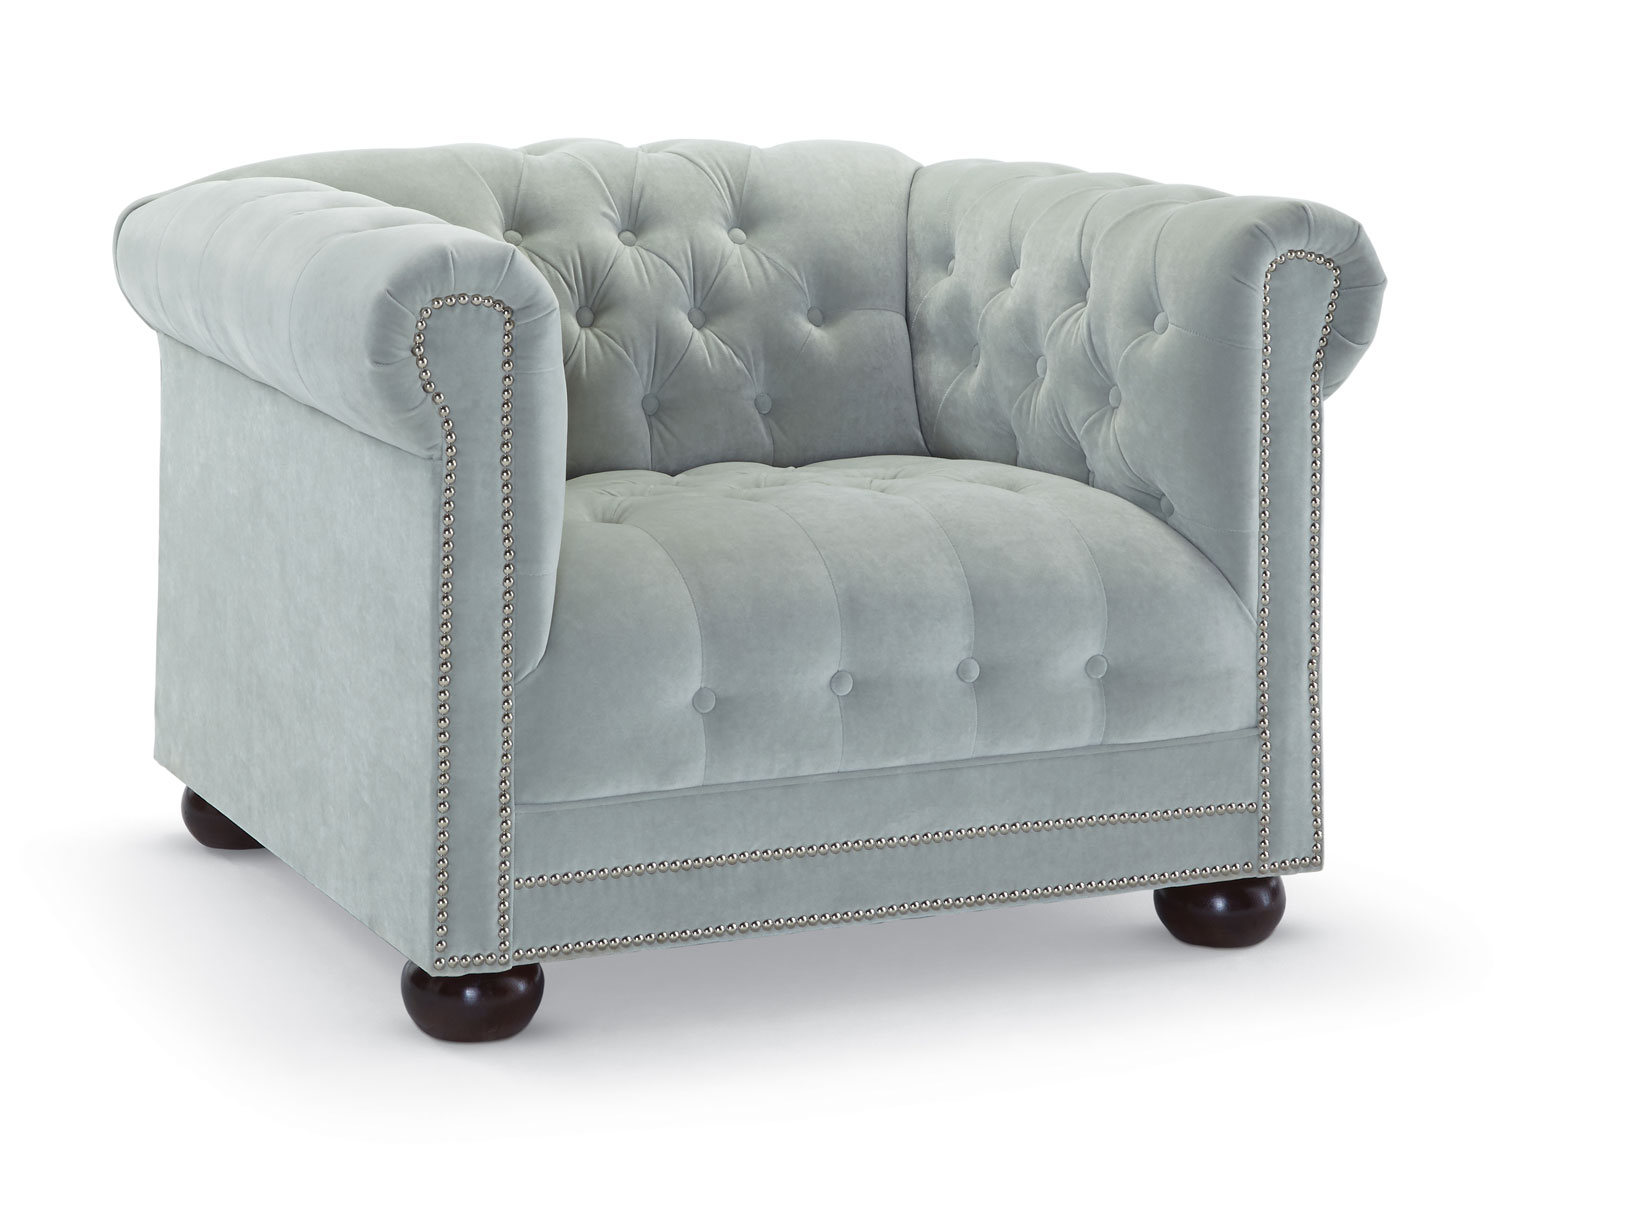 Incredible Chesterfield Lounge And Reception Seating From Hpfi High Machost Co Dining Chair Design Ideas Machostcouk